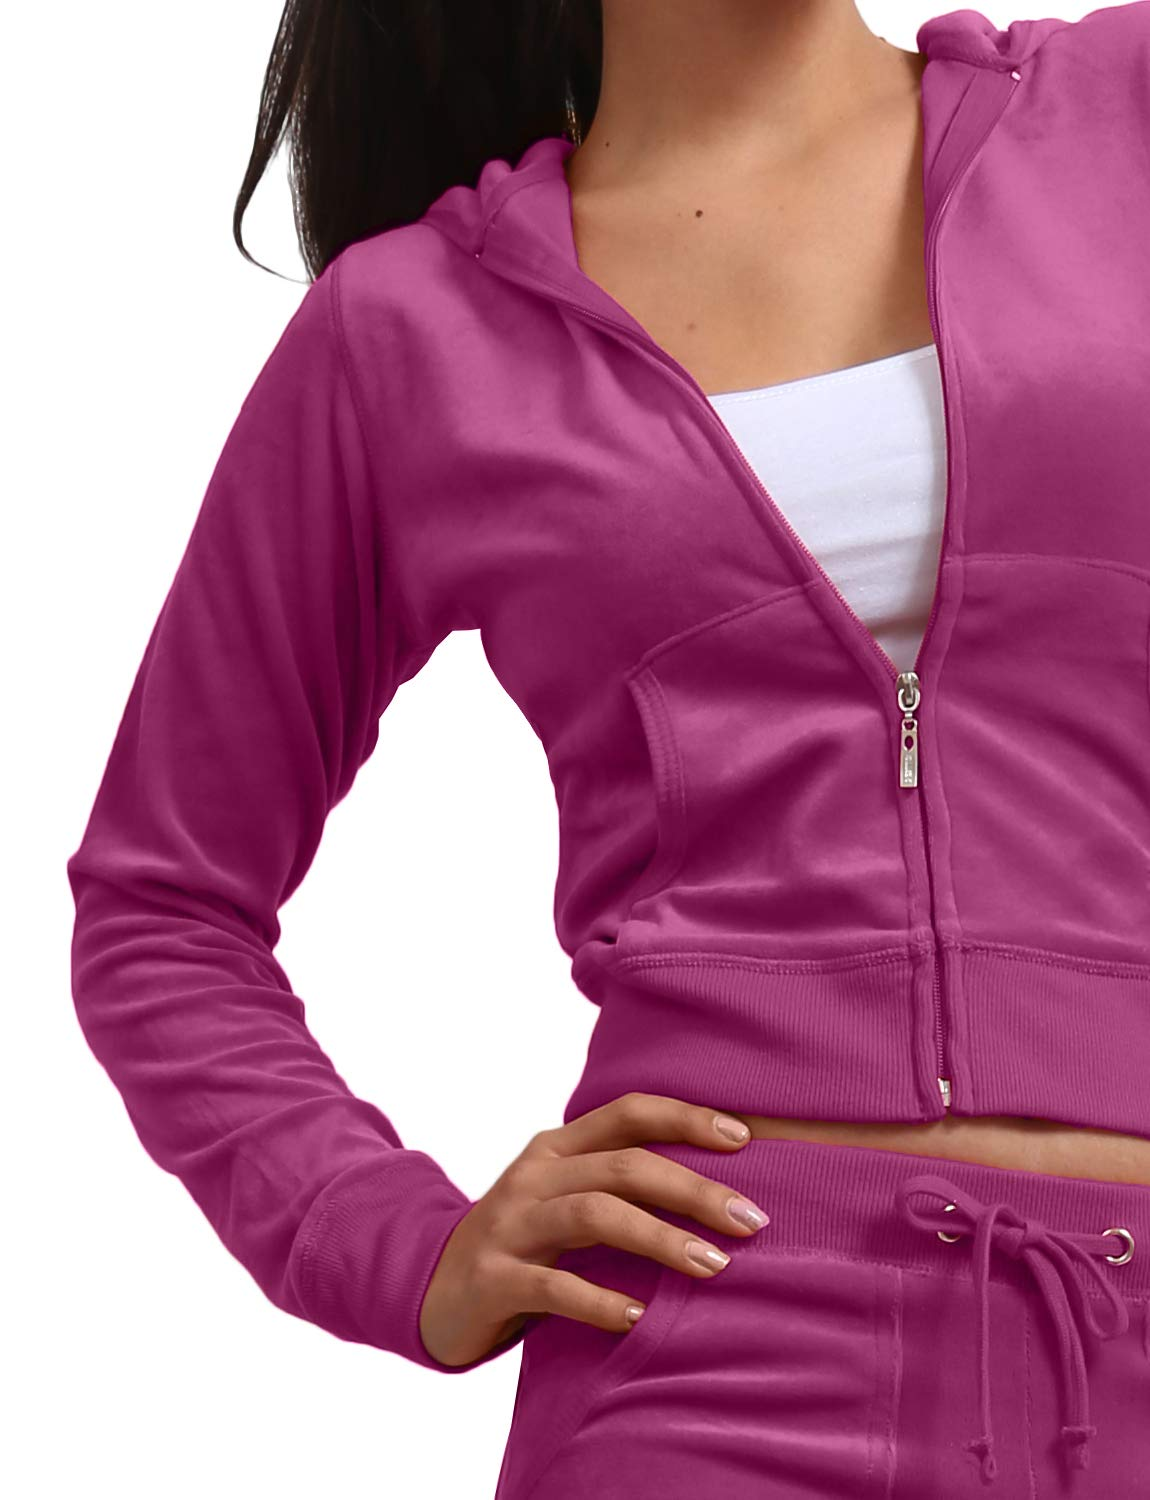 J. LOVNY Women's Active Casaul Velour Hoodie and Sweatpants Tracksuit Set by J. LOVNY